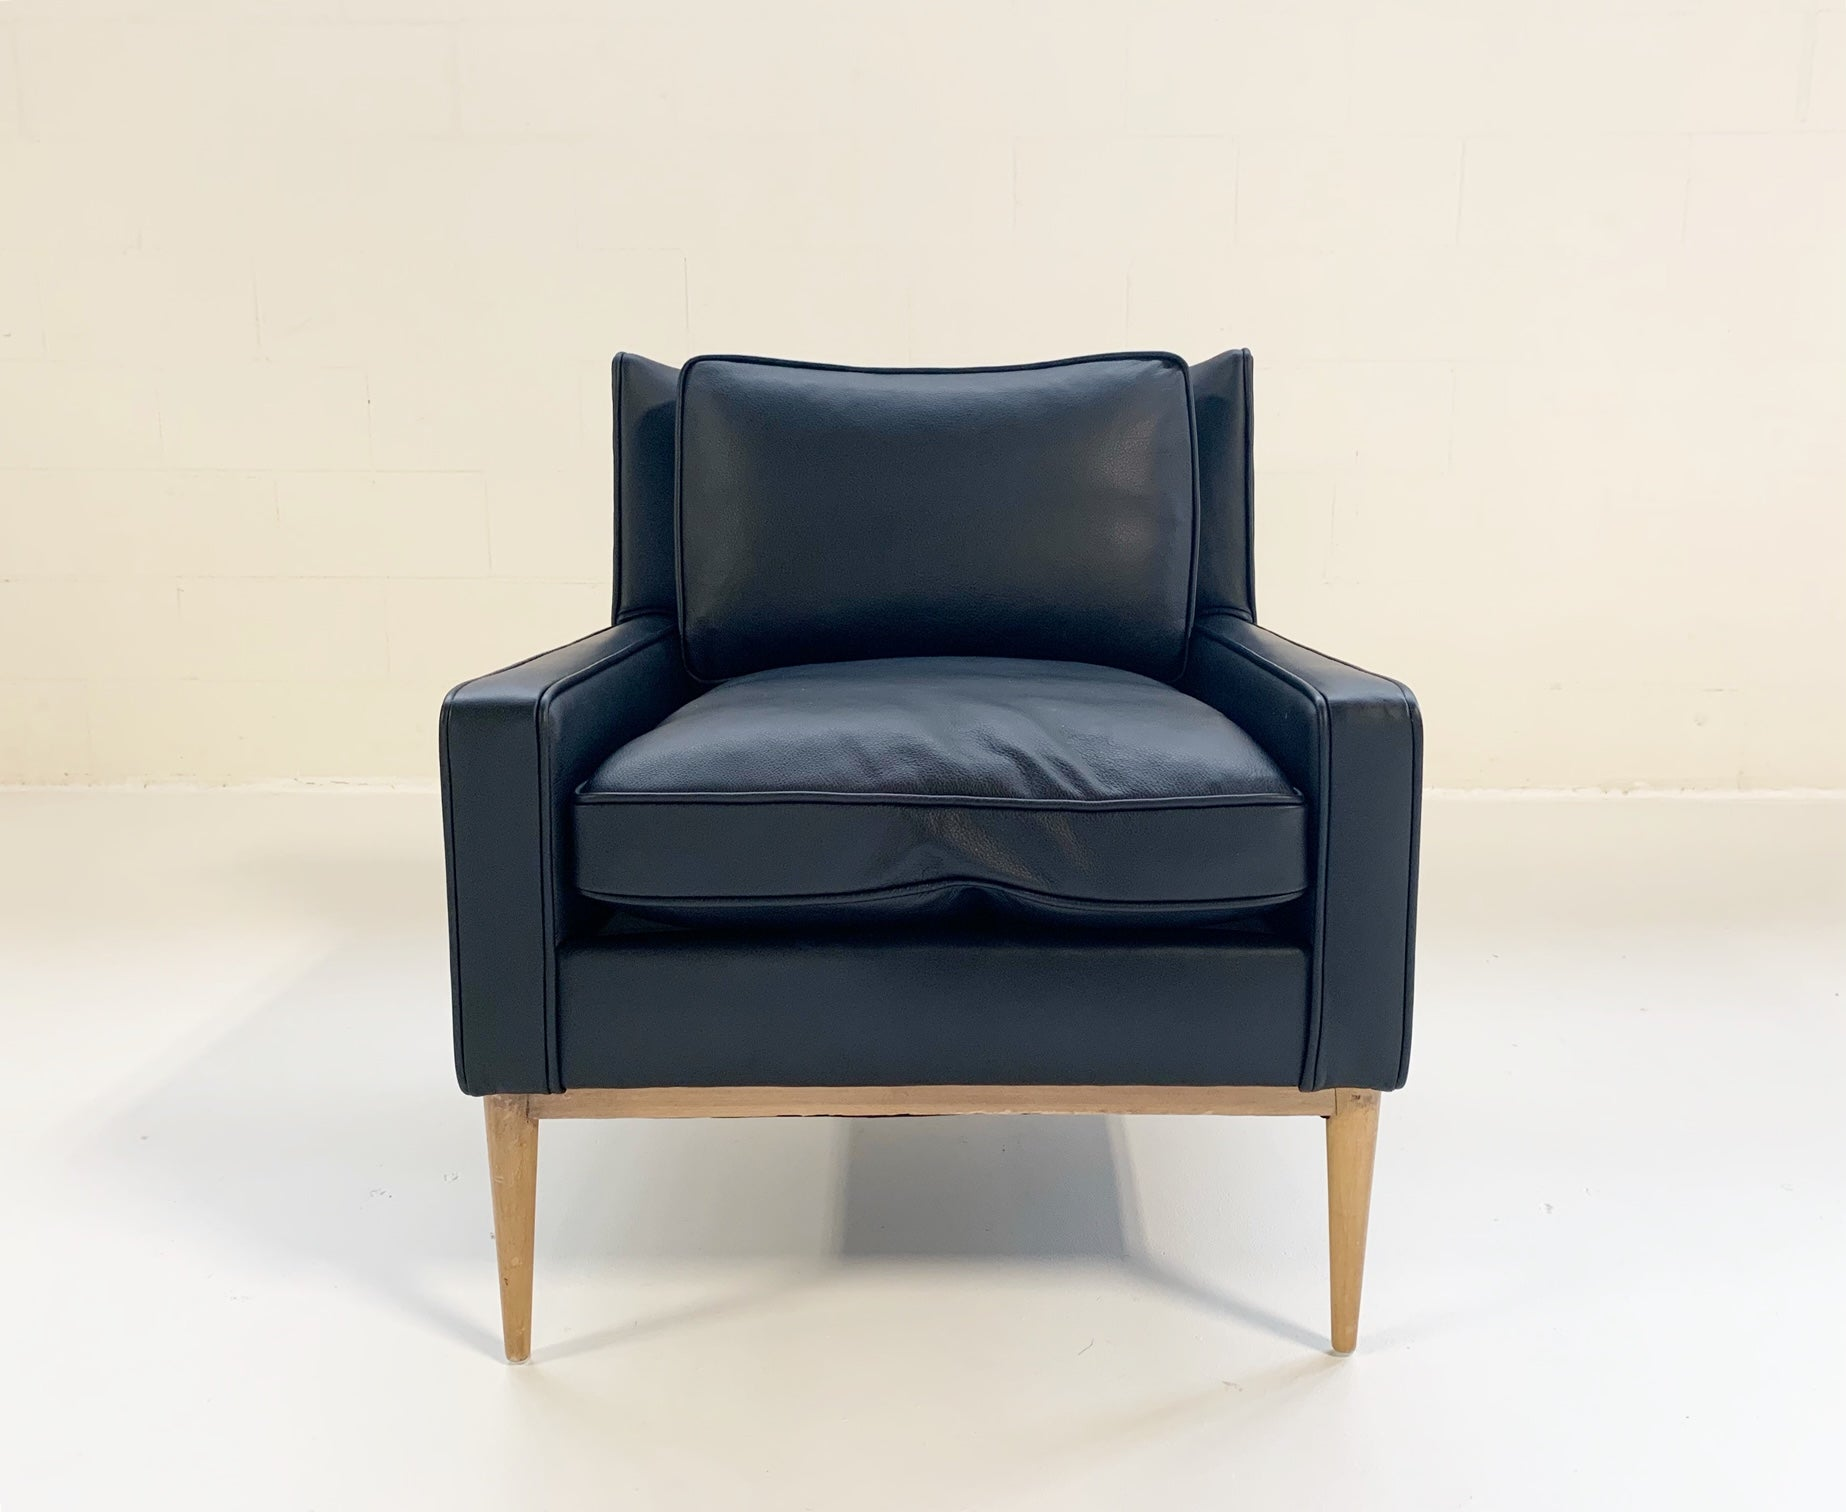 Model 302 Lounge Chair in Loro Piana Leather - FORSYTH